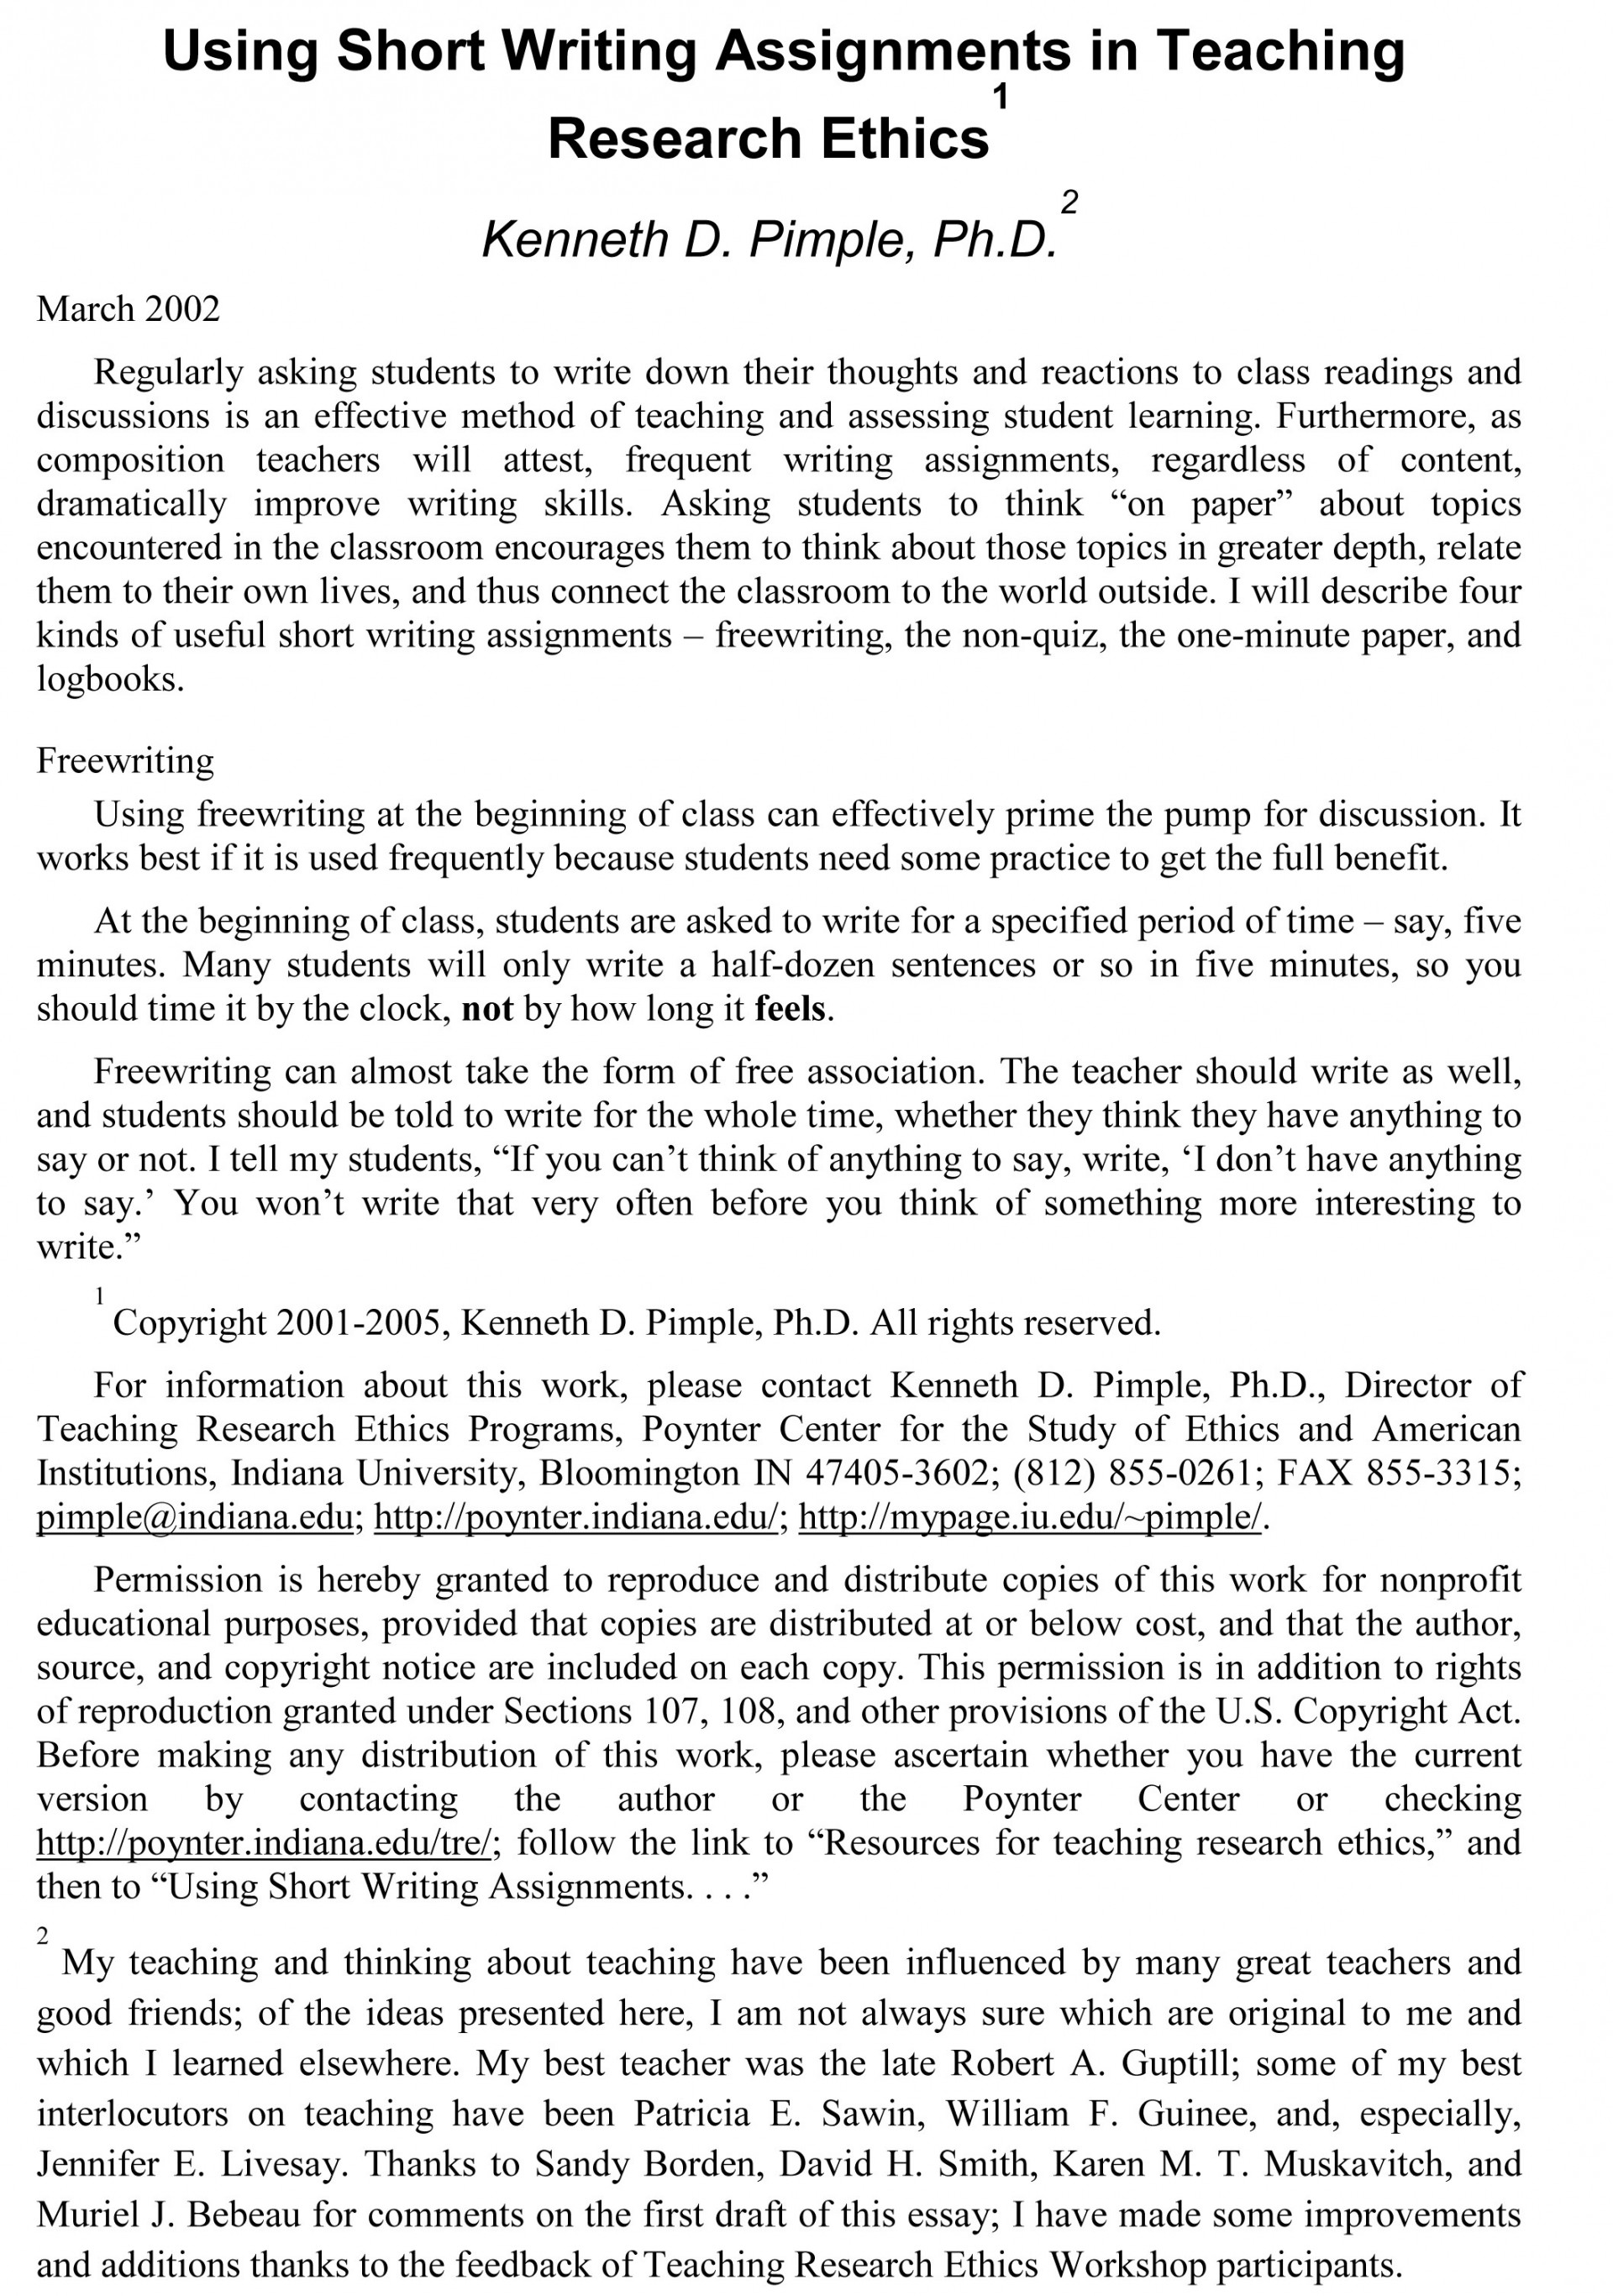 015 Essay Example Persuasive Samples Sample Awesome Short Examples About Bullying College Athletes Should Get Paid For Elementary Students 1920